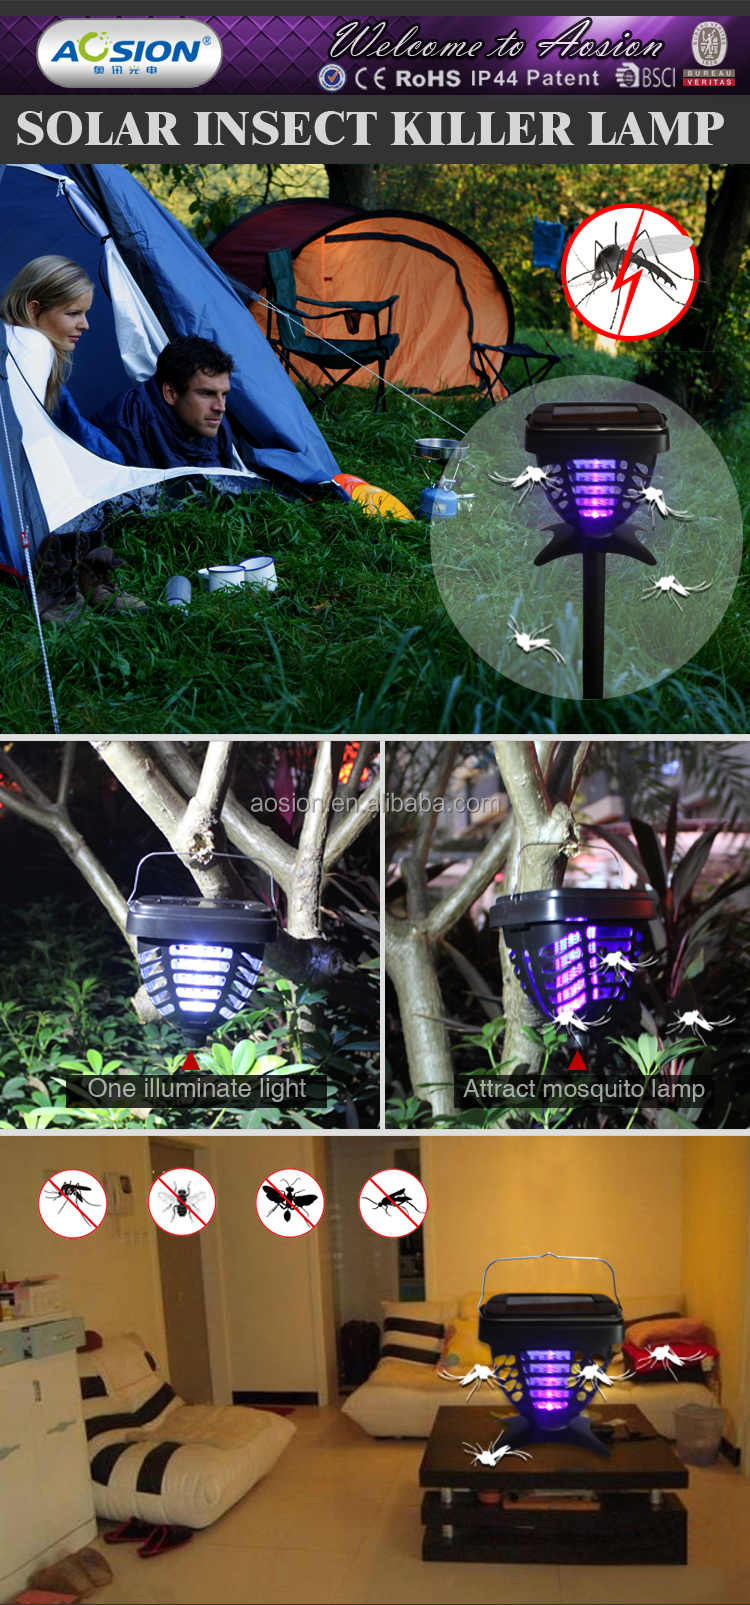 portable solar mosquito killer lamp circuit diagram pdf view portable solar mosquito killer lamp circuit diagram pdf